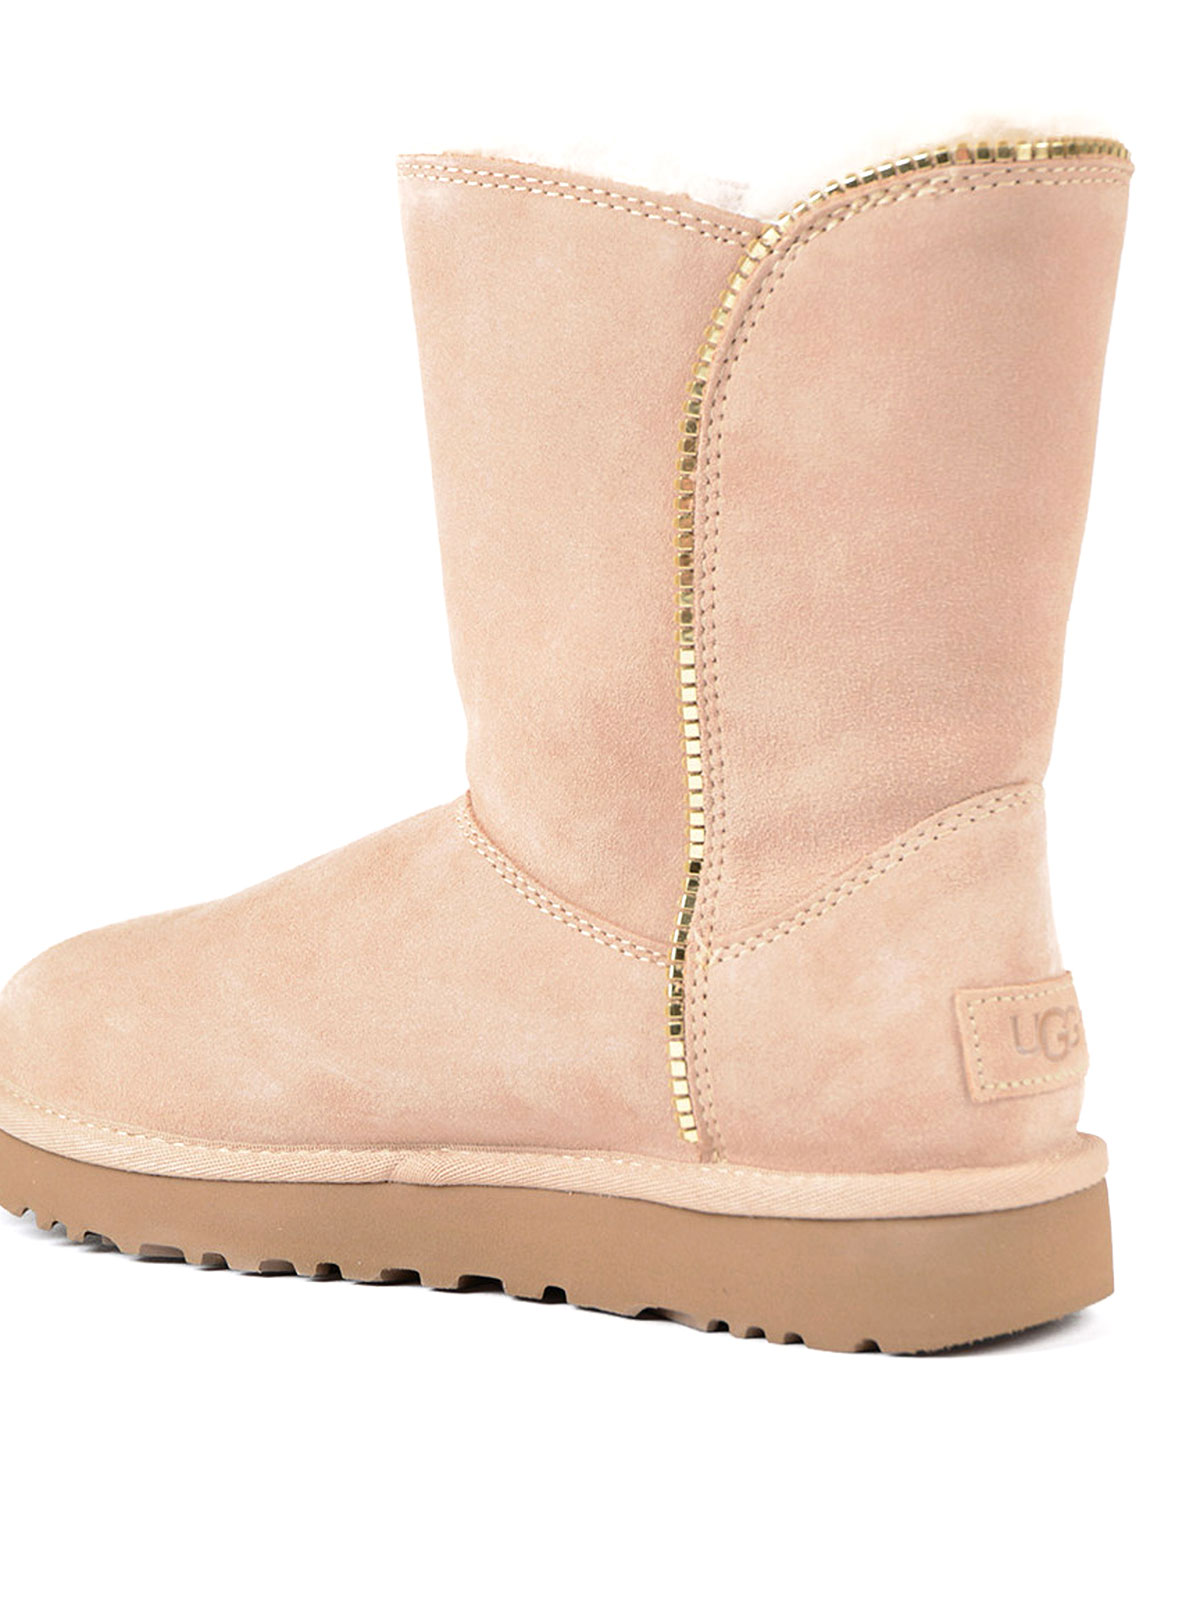 19bb02b2296 Ugg - Marice pink suede booties - ankle boots - 1019633 DRIFTWOOD